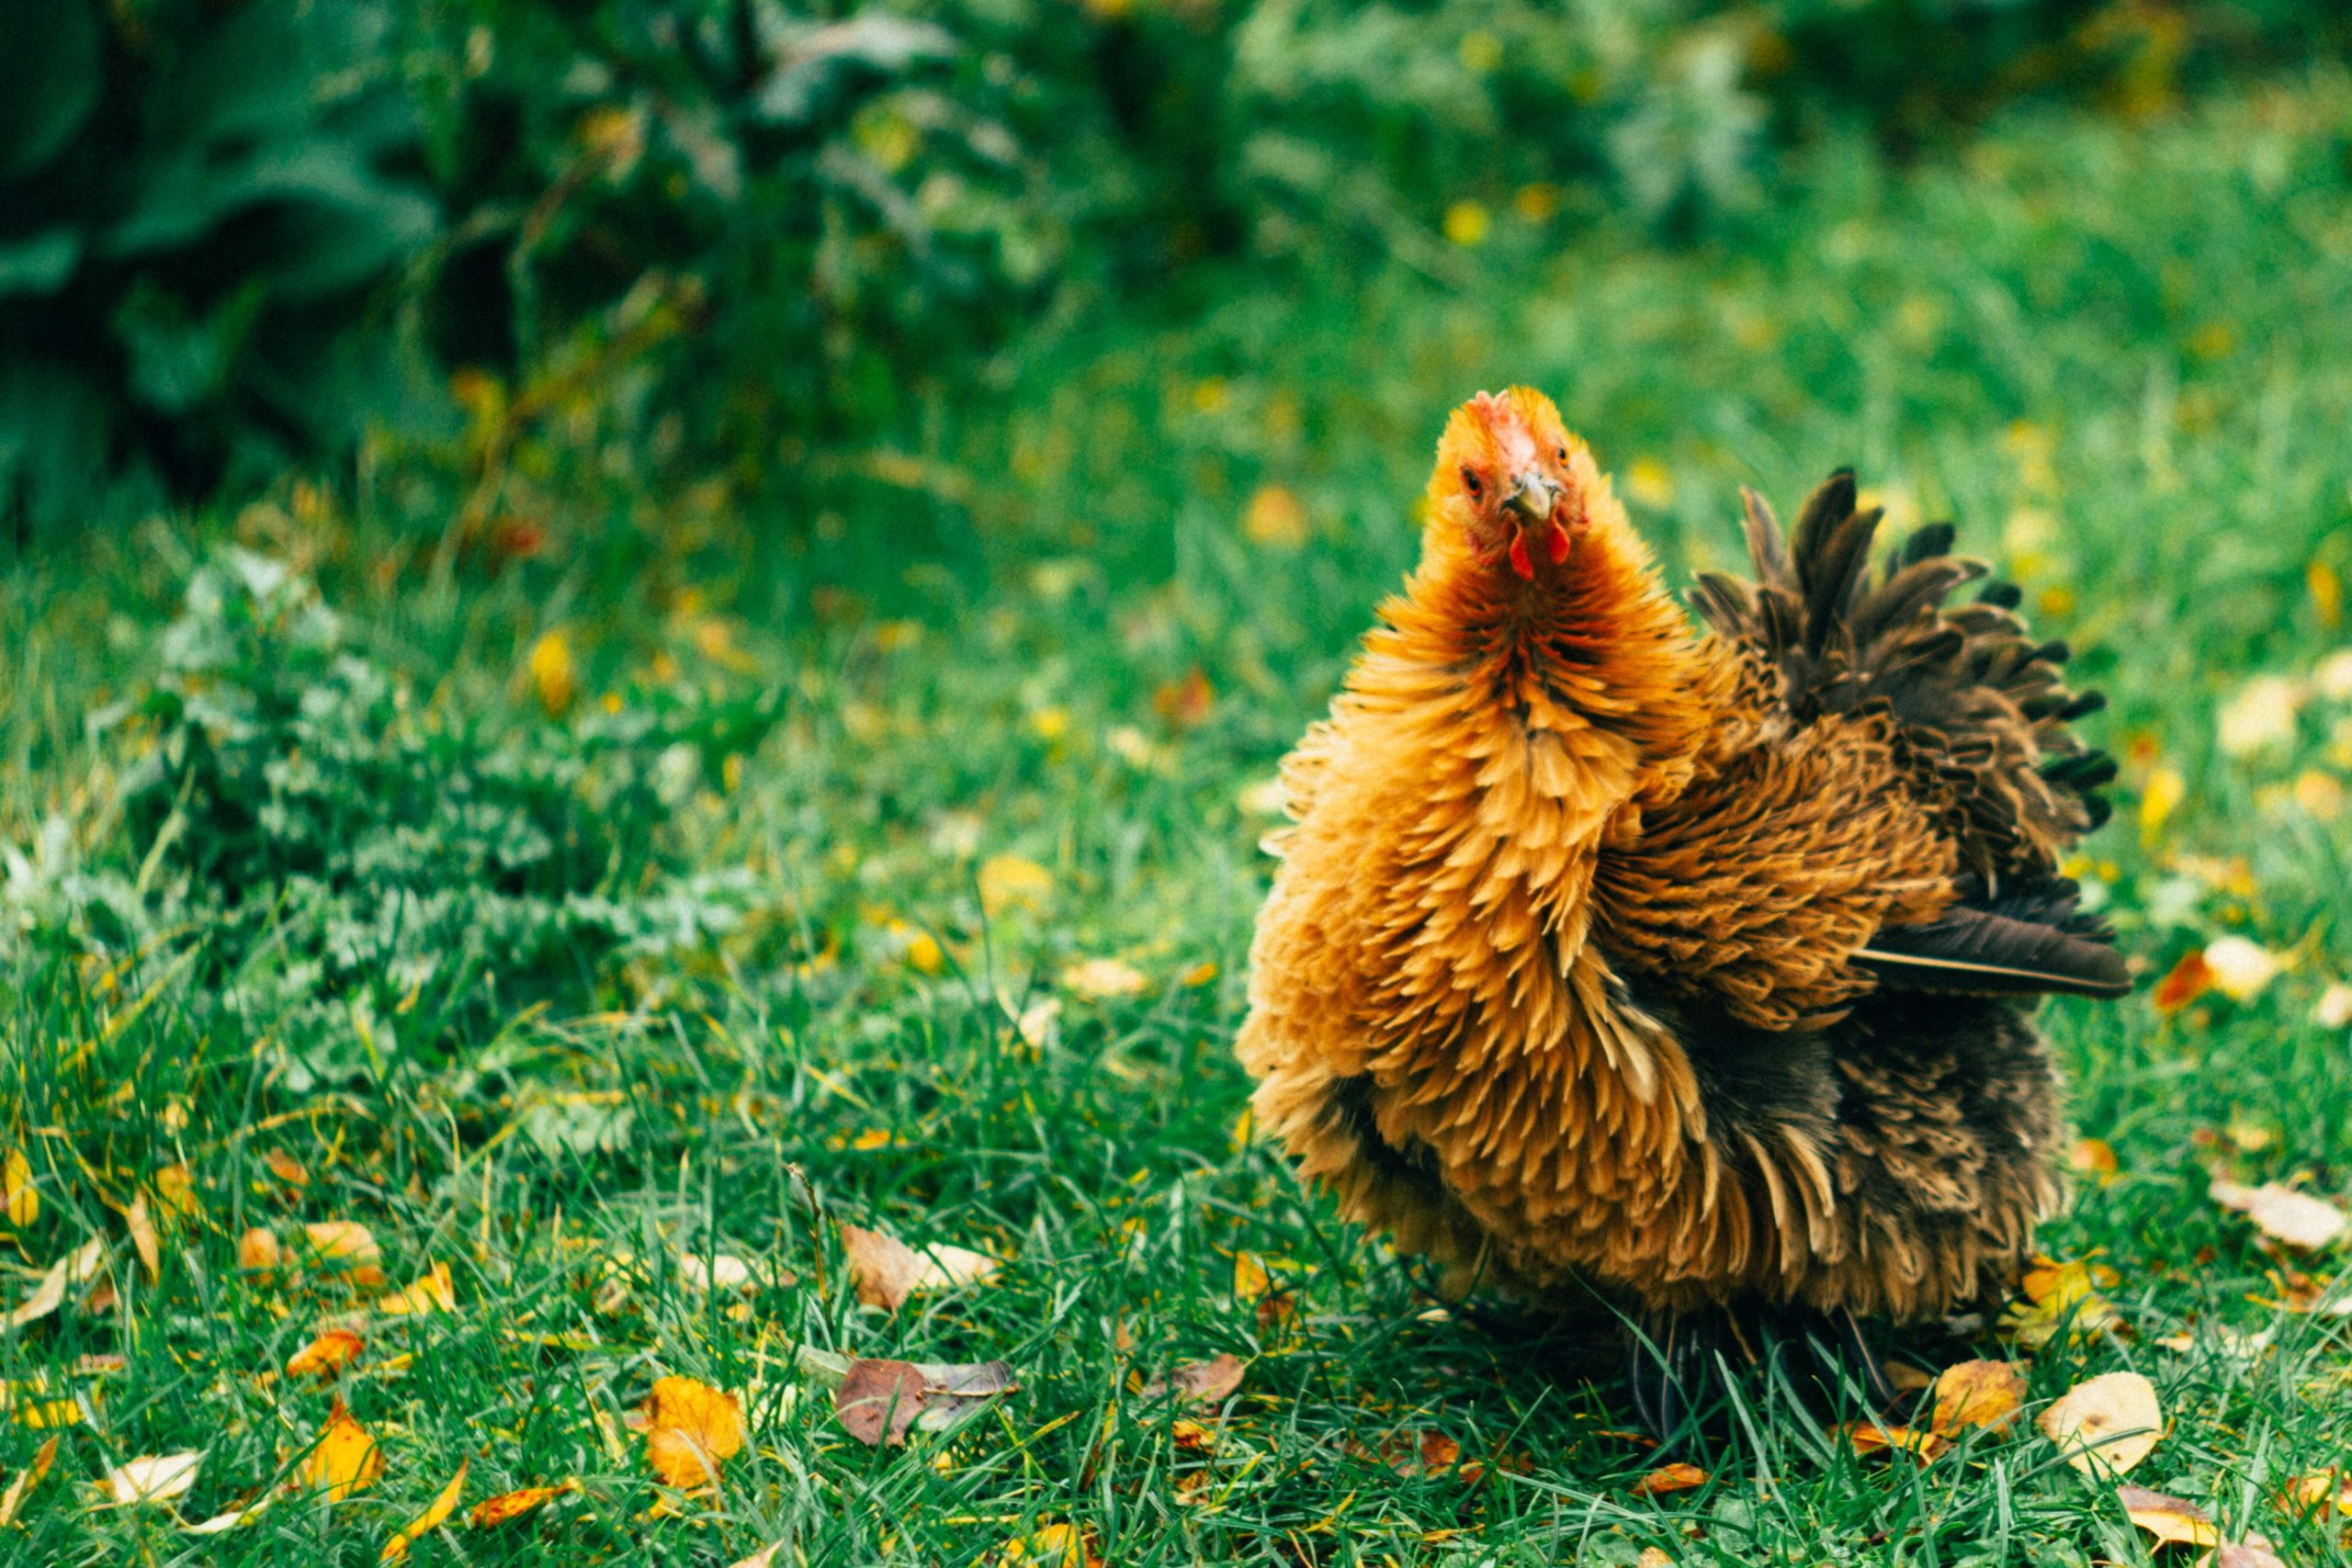 Helping your chicken through their moult